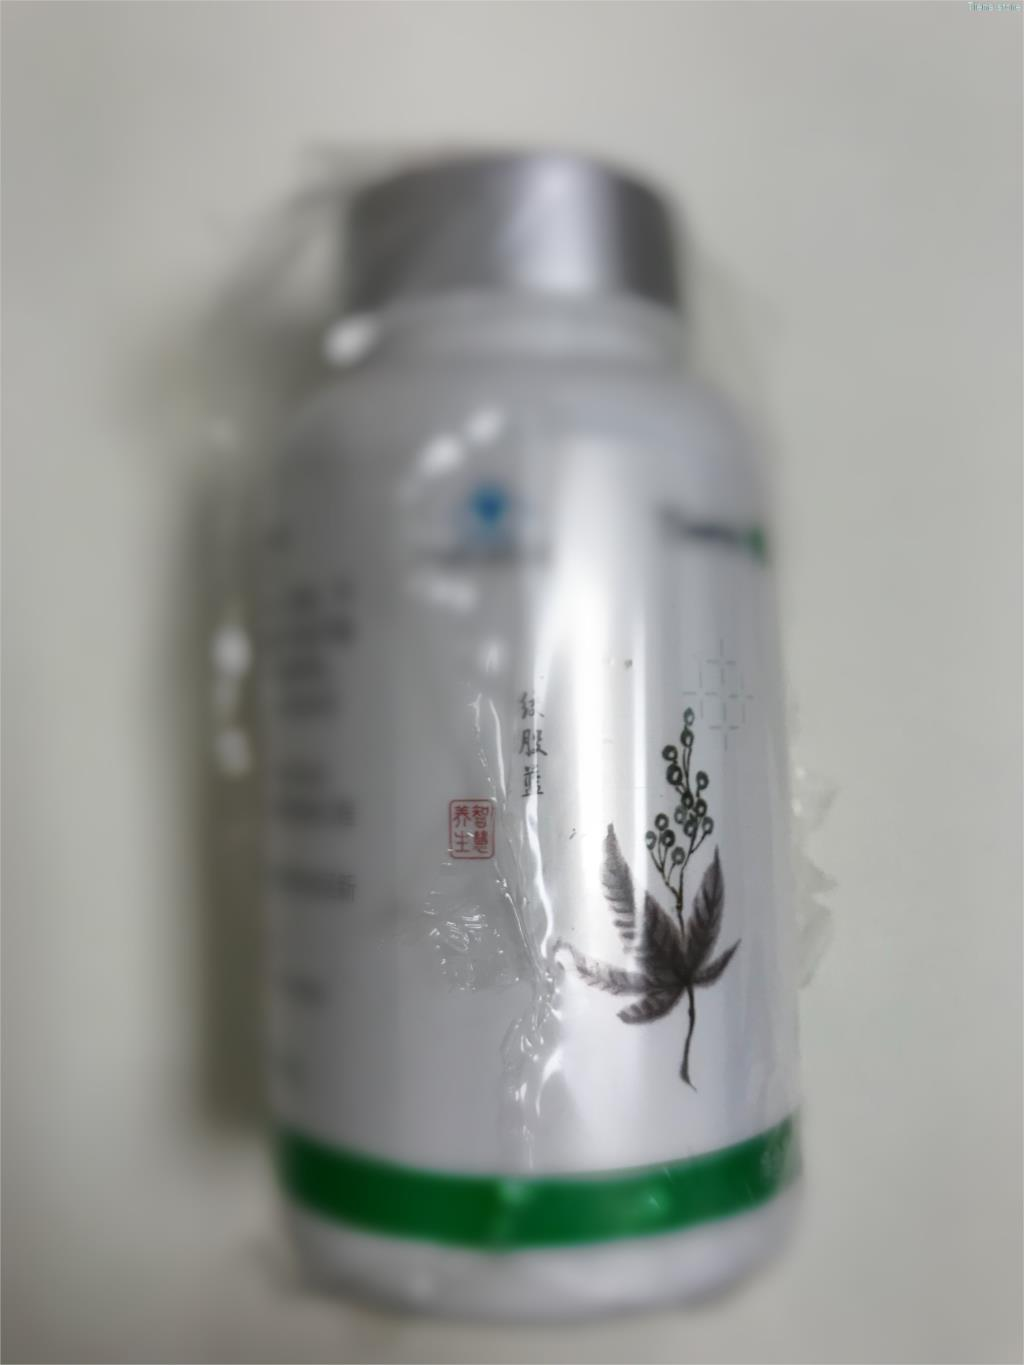 2018 NEW PACKAGE 1 Bottle of TIEN Cell Rejuvenation Produced in 2018